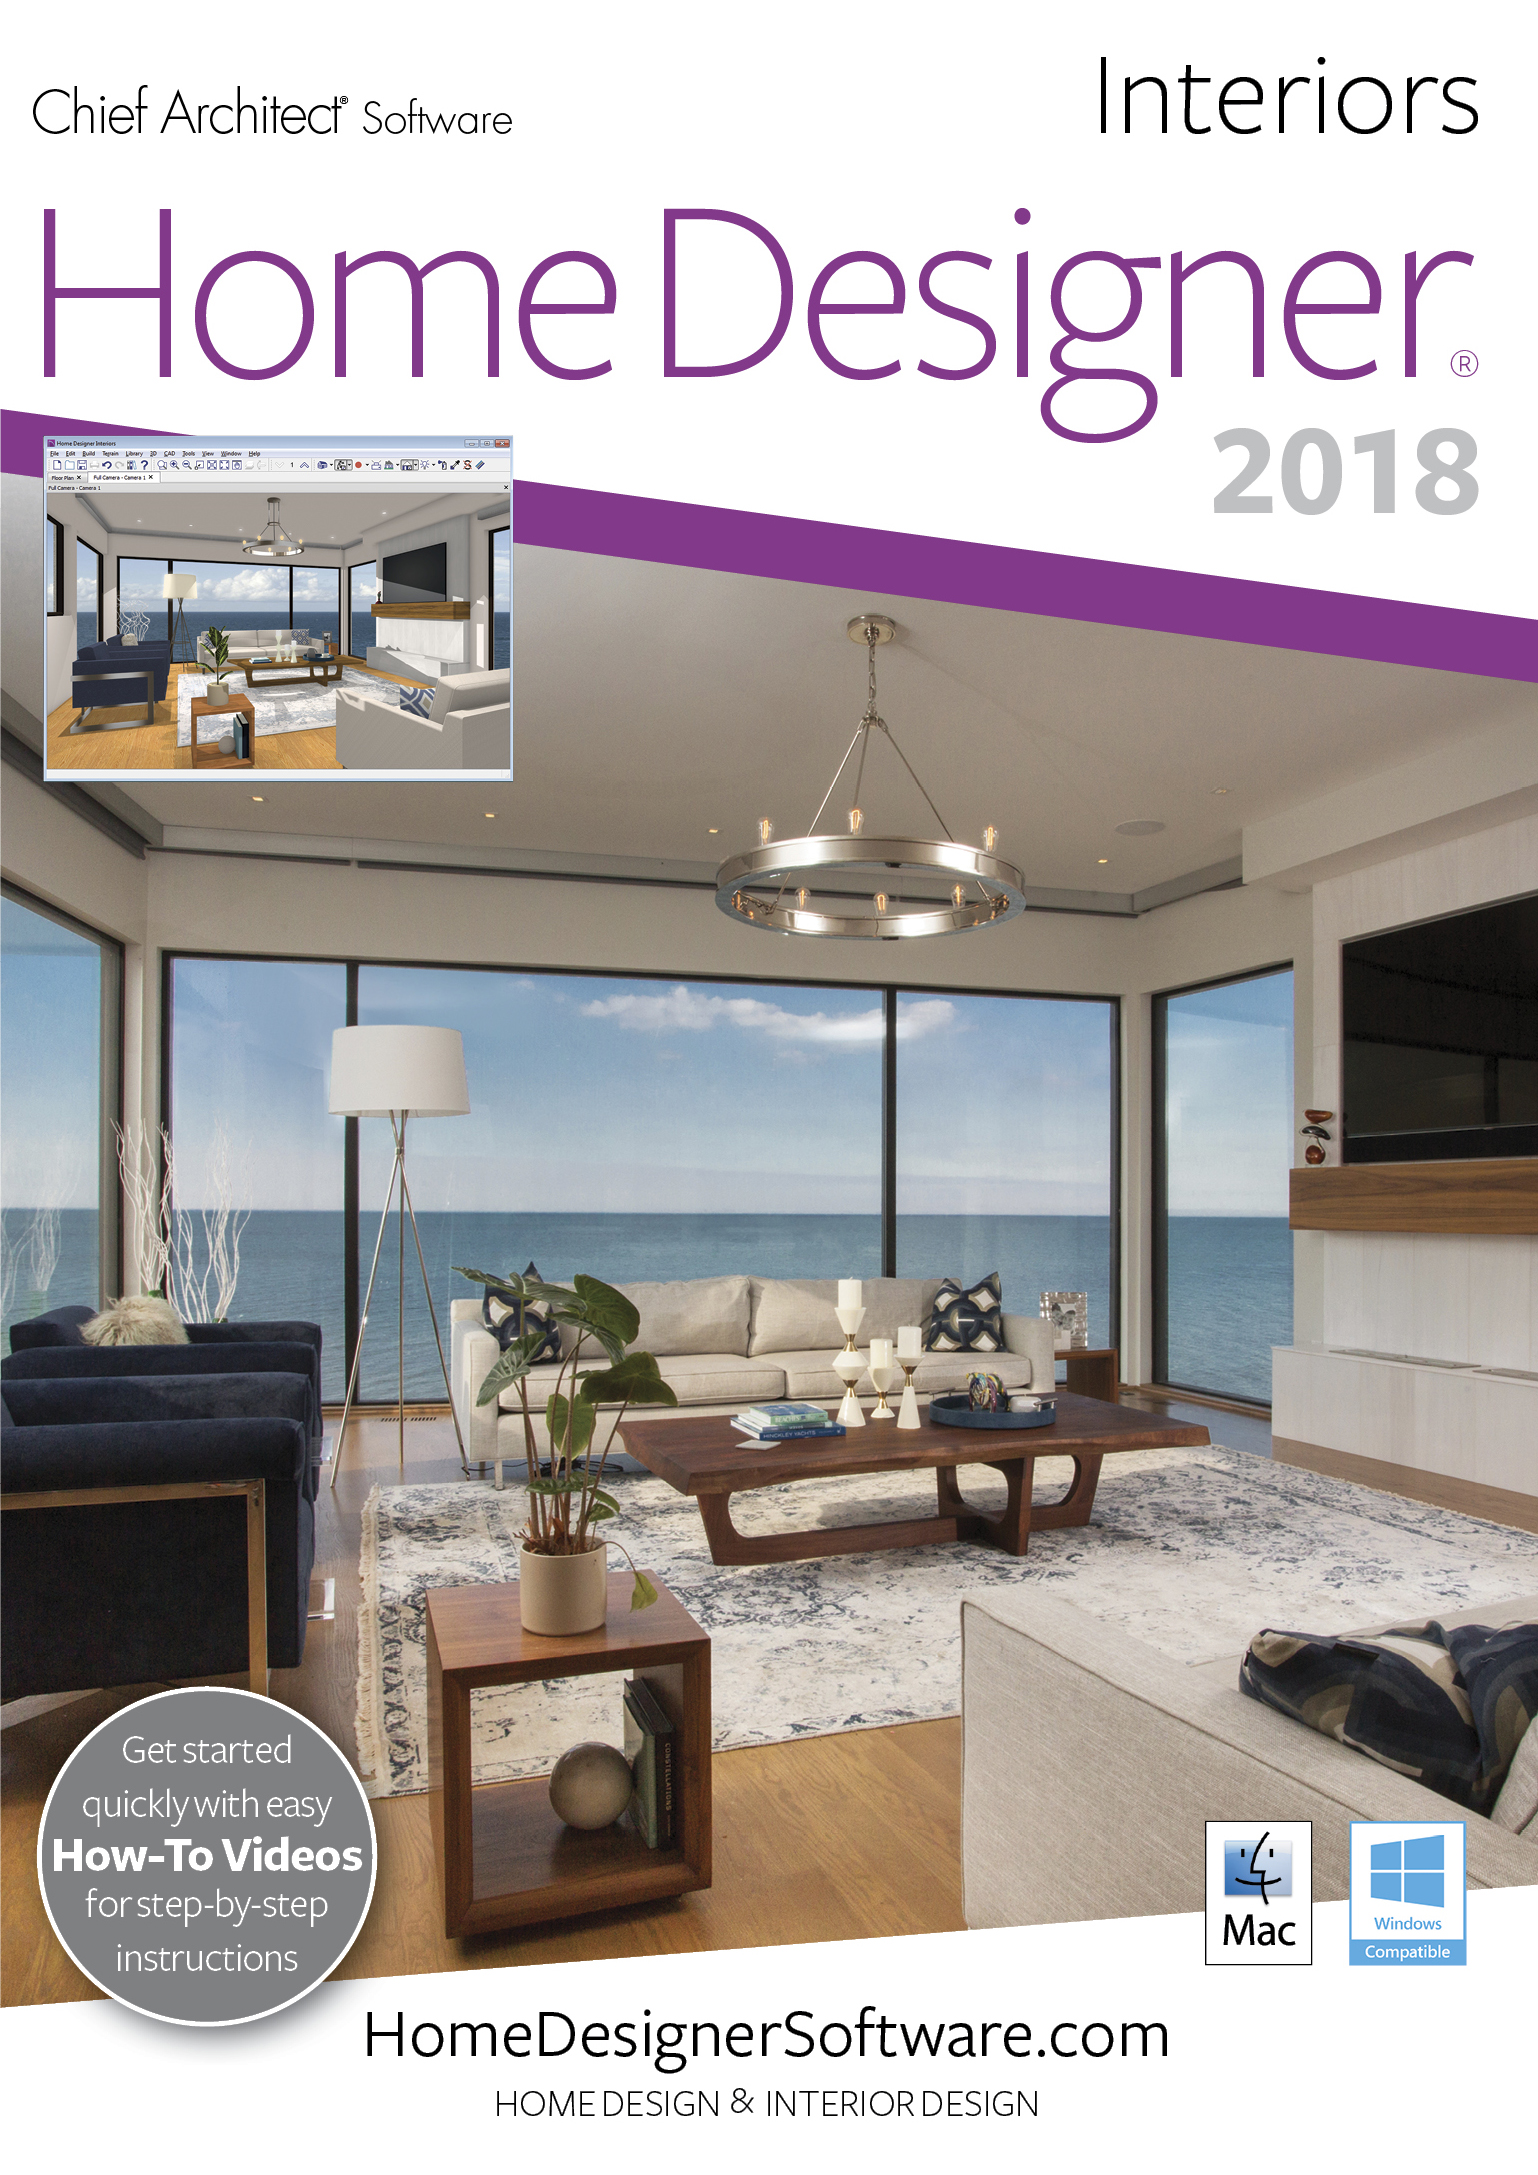 Home Designer Interiors 2018 - Mac Download [Download] by Chief Architect